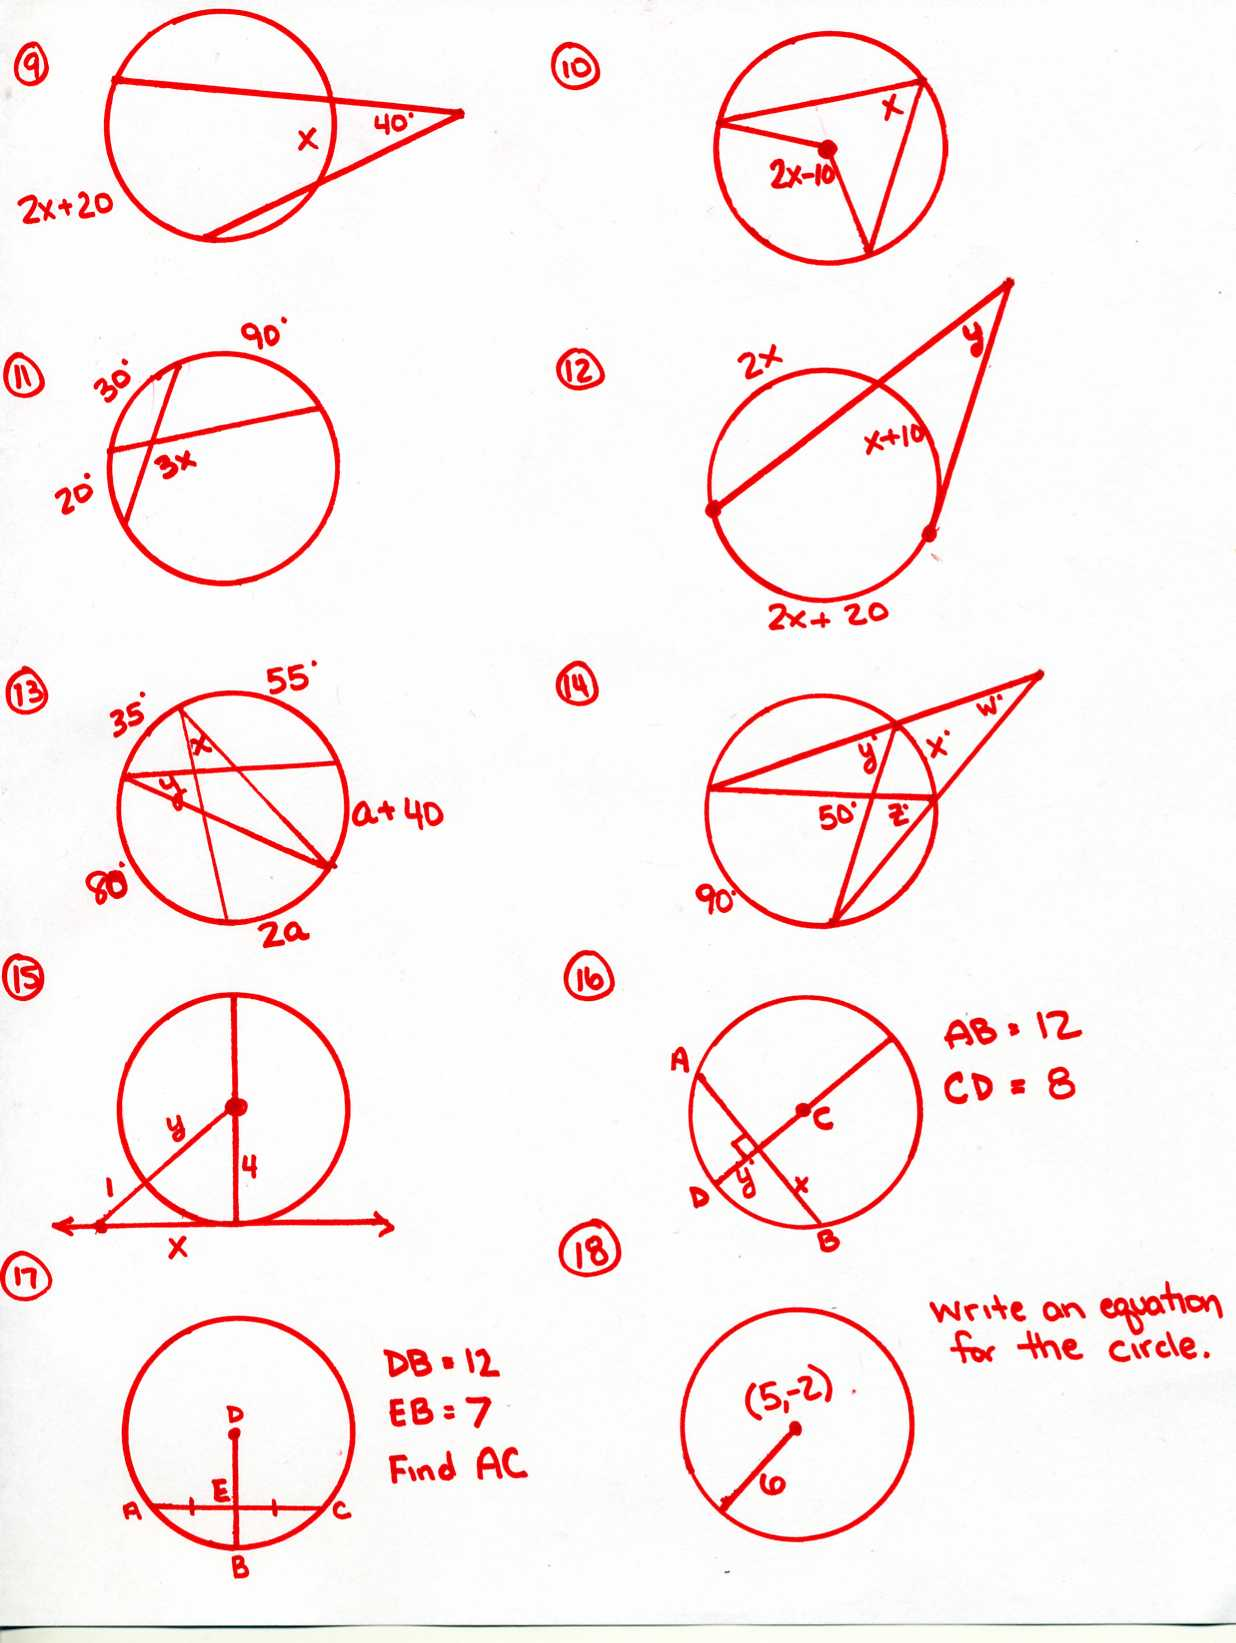 Honors Geometry 2015-2016 - MR  CALISE'S MATH WEBSITE